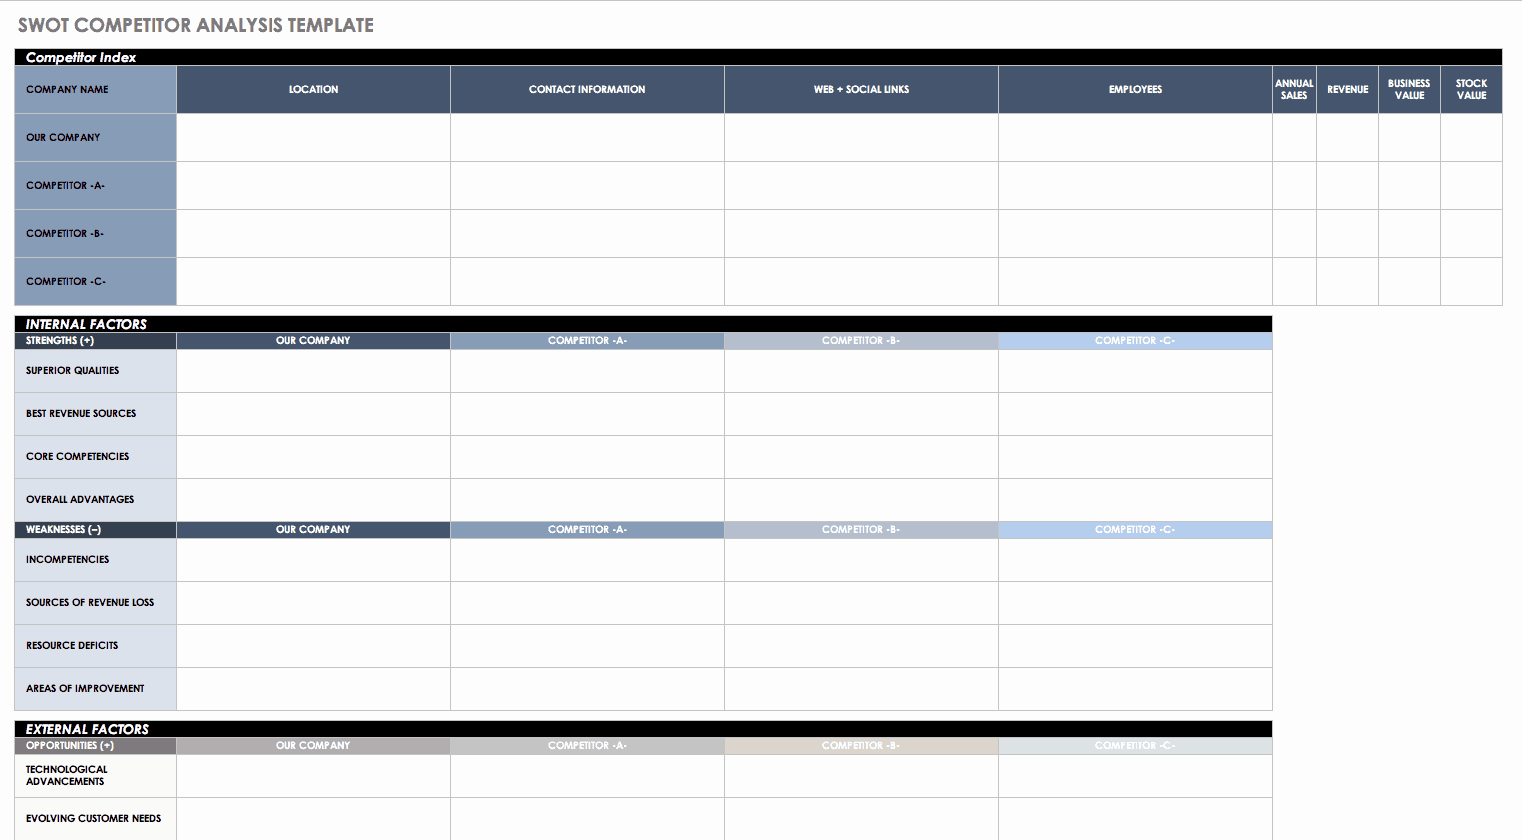 Competitor Analysis Template Excel Fresh 14 Free Swot Analysis Templates